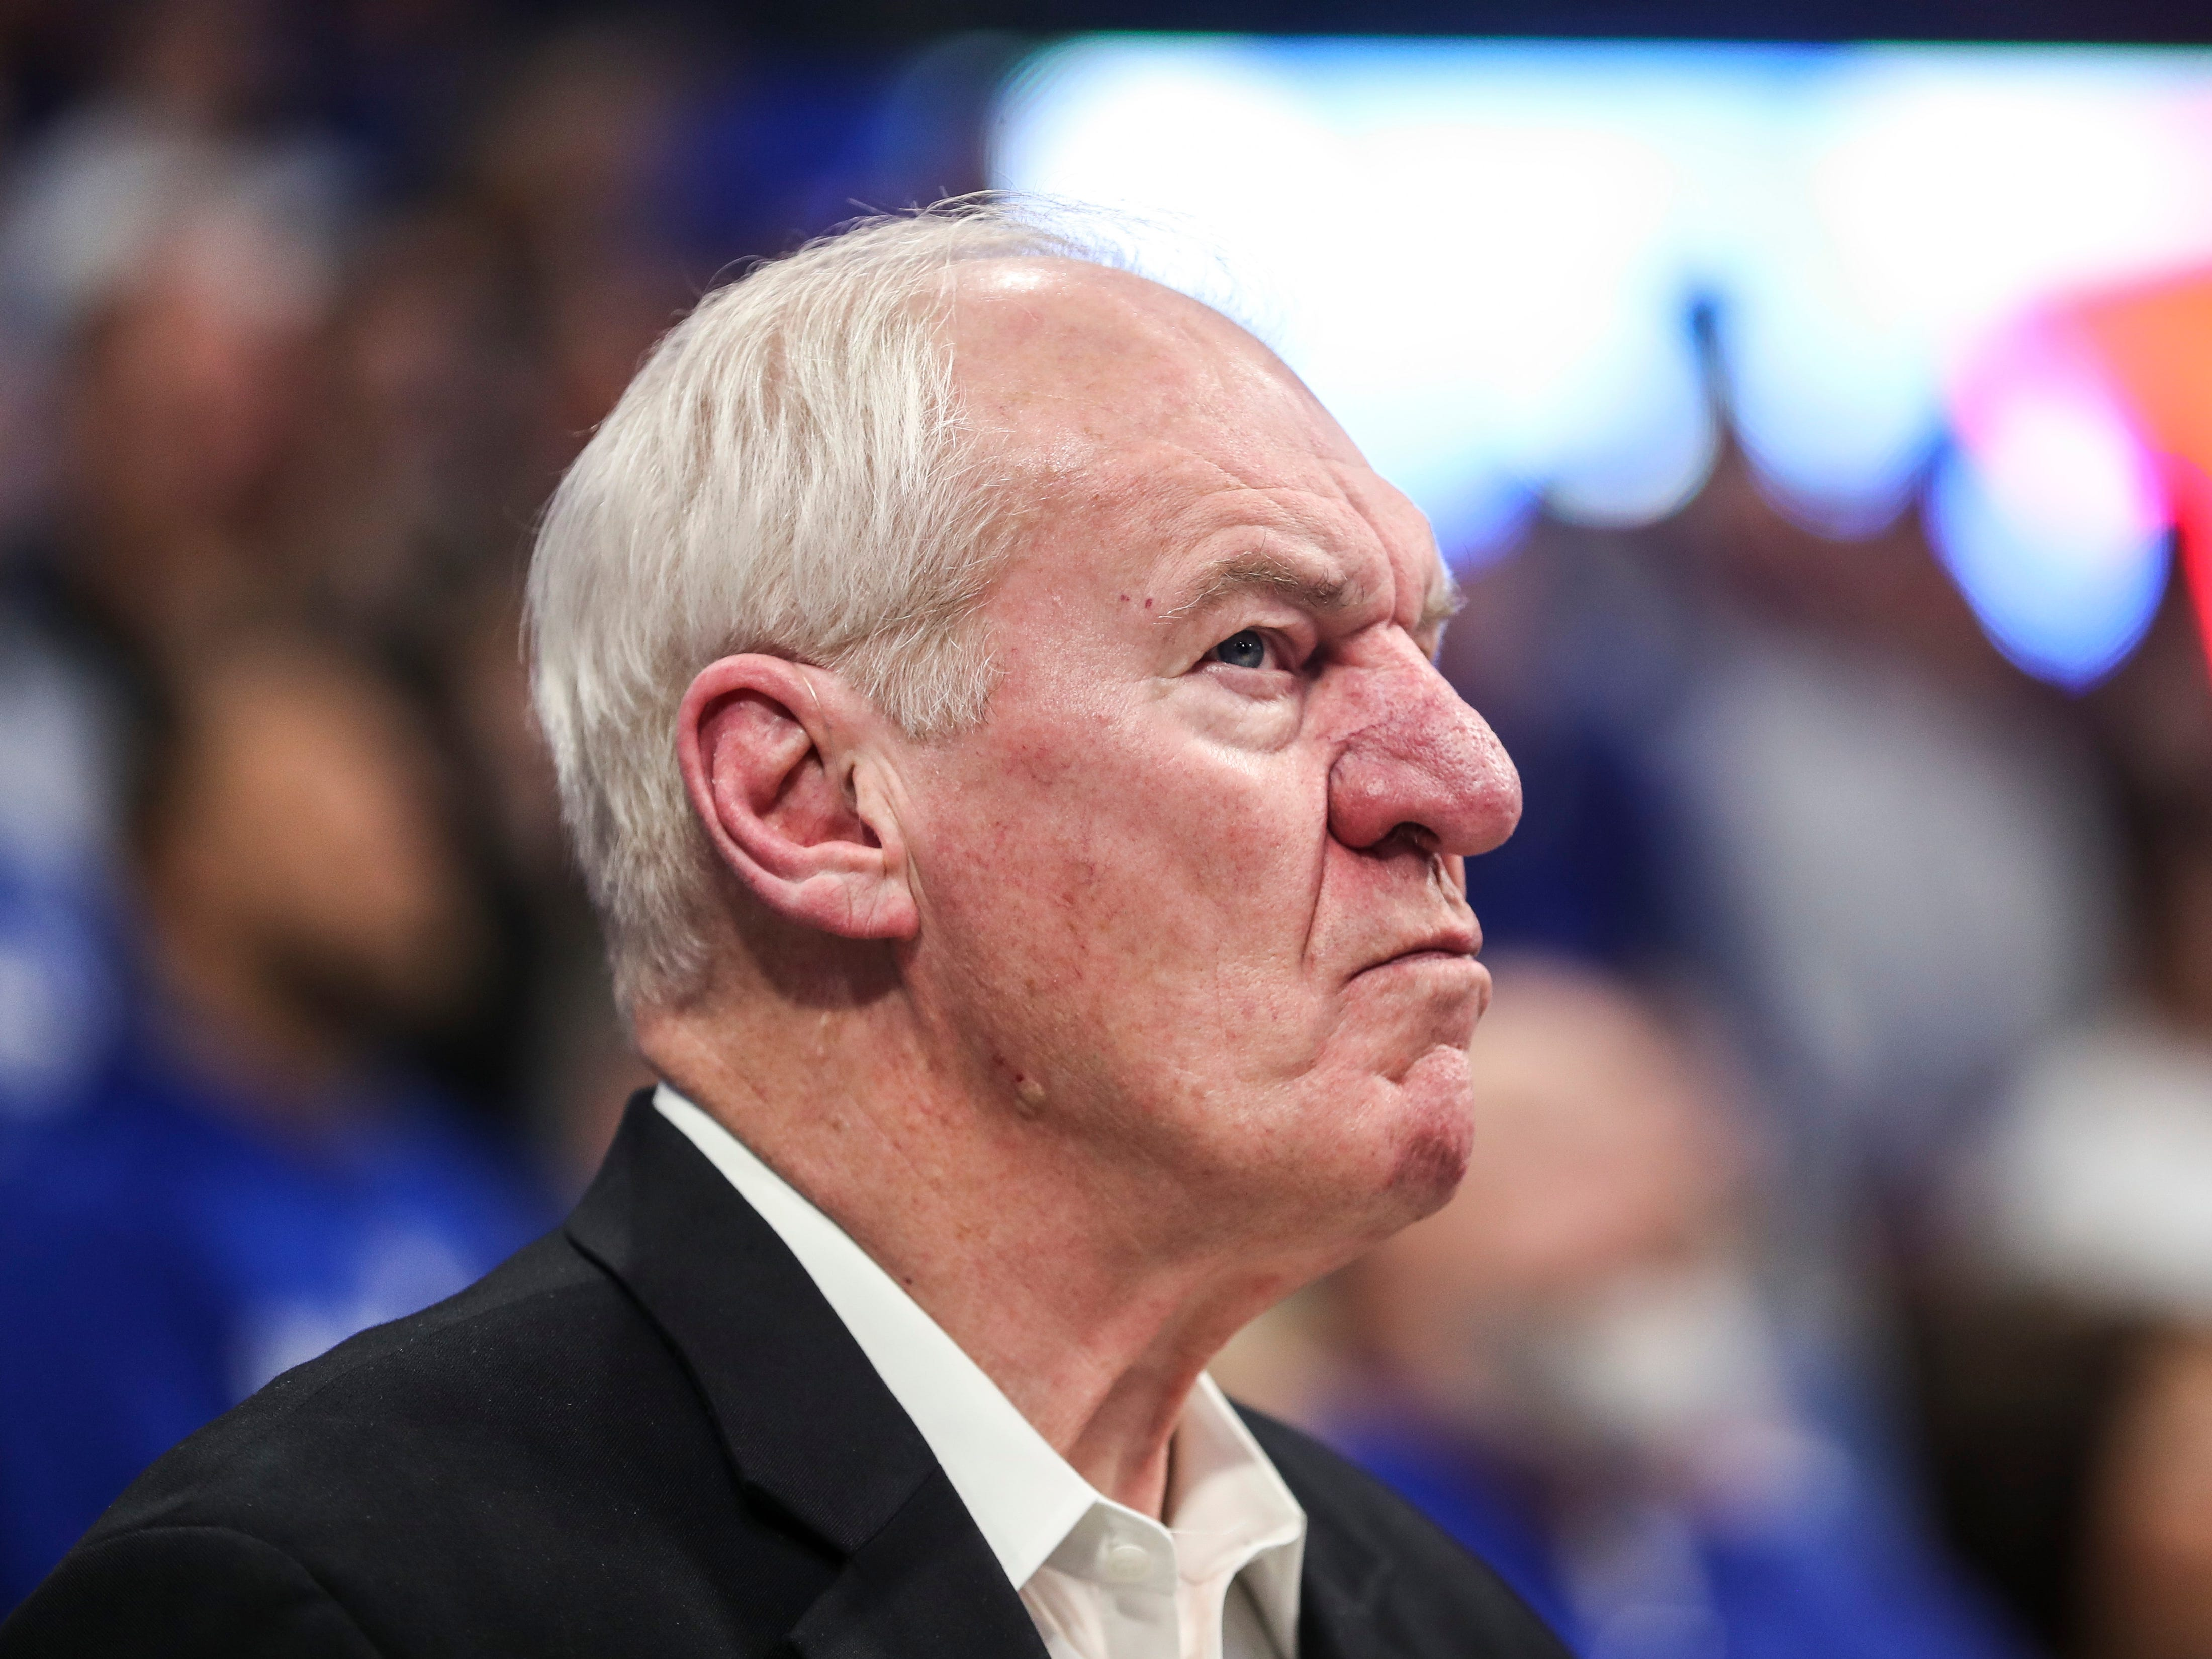 Former Kentucky and NBA player Dan Issel on the sidelines before the game against Texas A&M Tuesday, January 8, 2019.